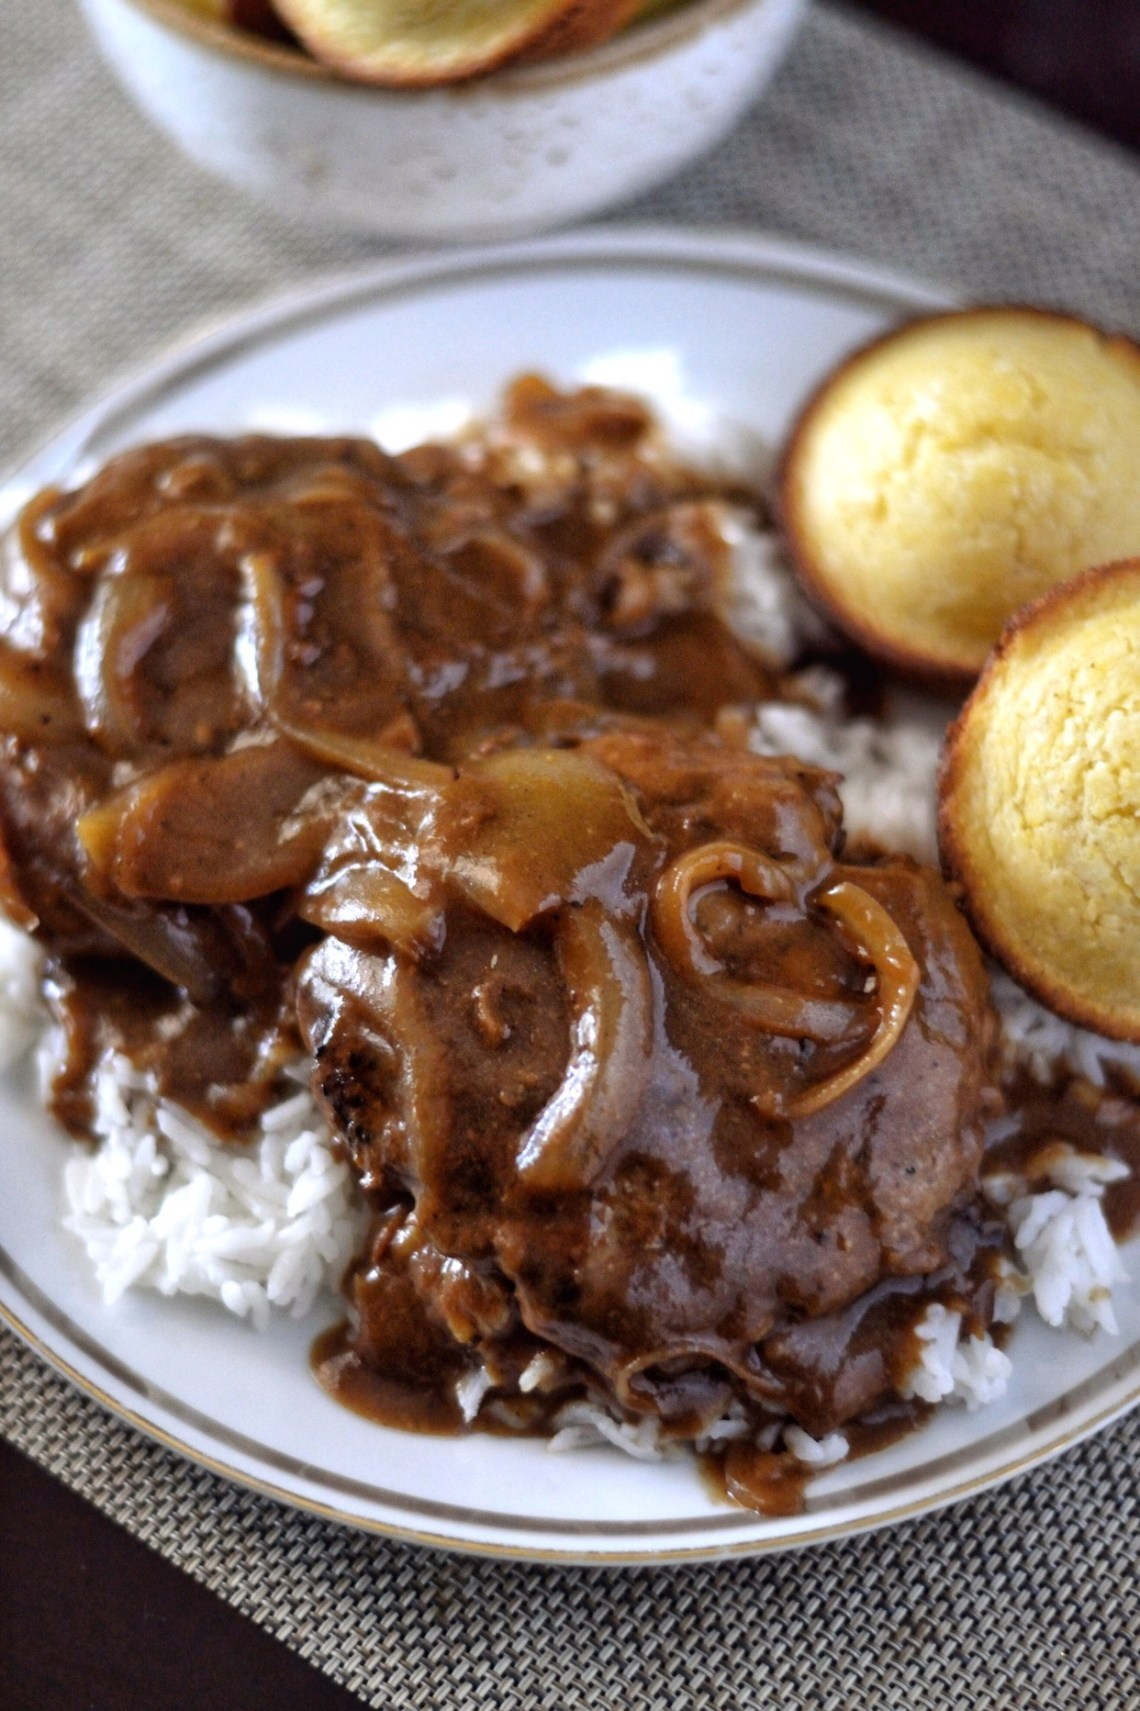 Home Style Hamburger Steak and Onion Gravy Recipe